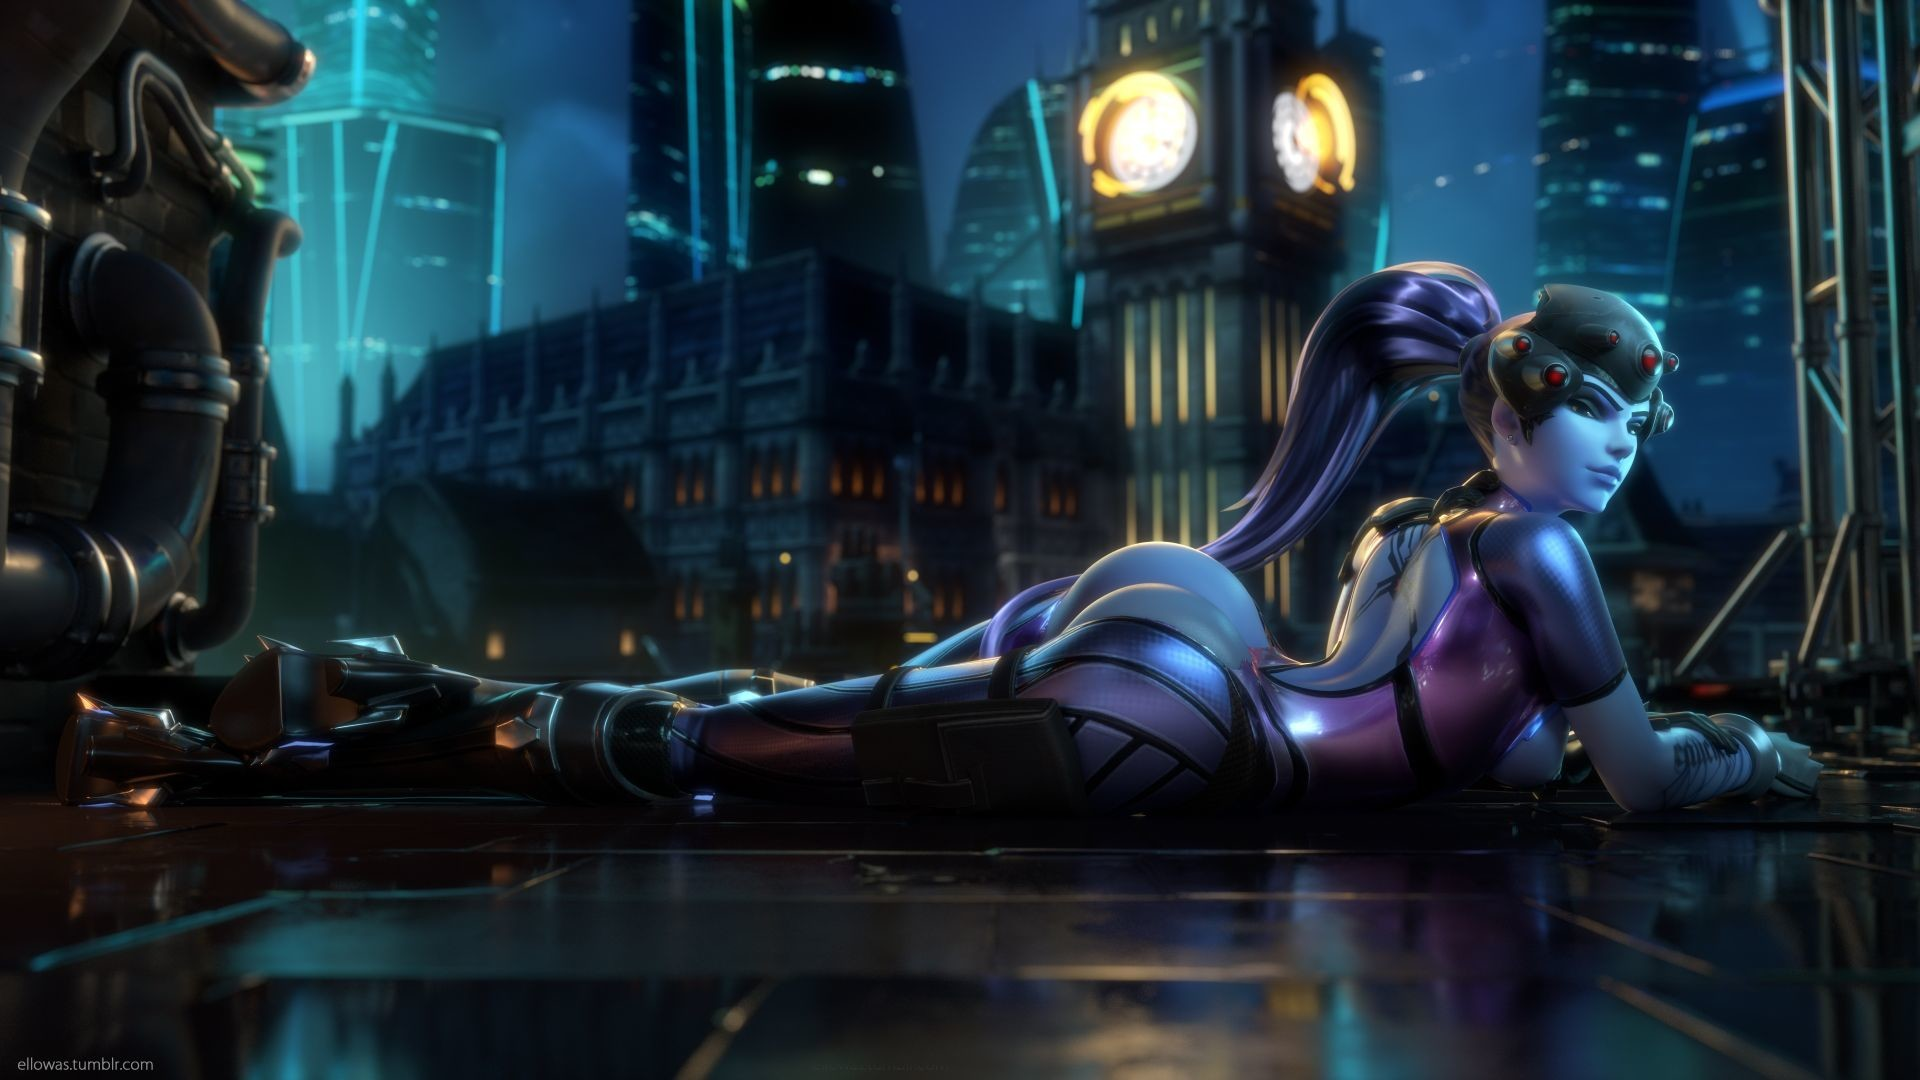 1920x1080 Widowmaker, Overwatch, 4k (horizontal) ...